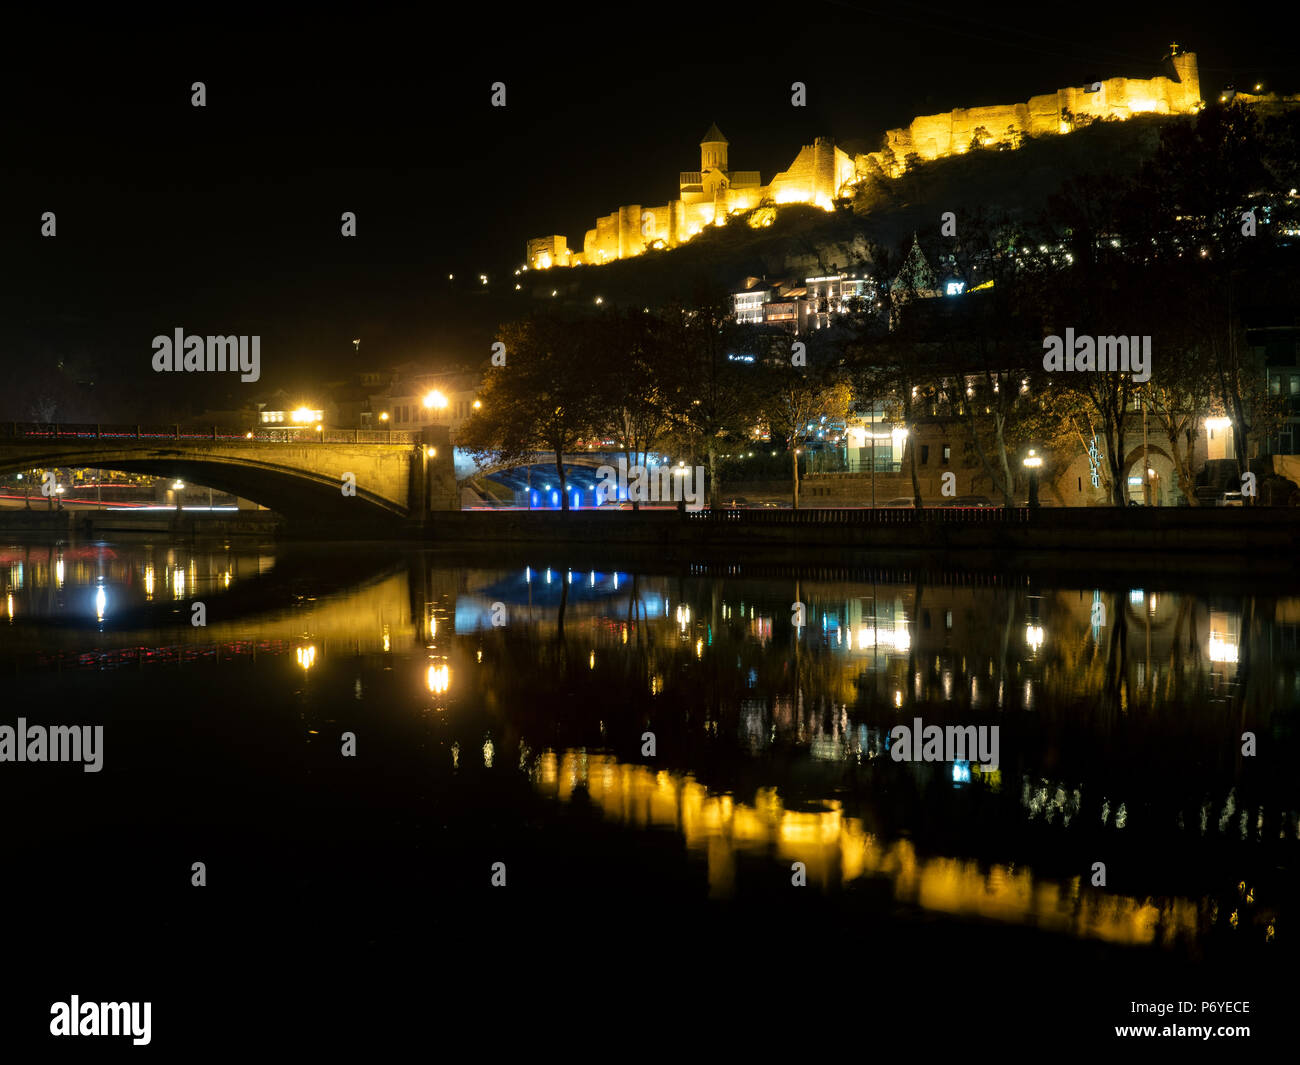 Colorful nightscape of Tbilisi : reflection of illuminated Narikala fortress in Mtkvari river Stock Photo